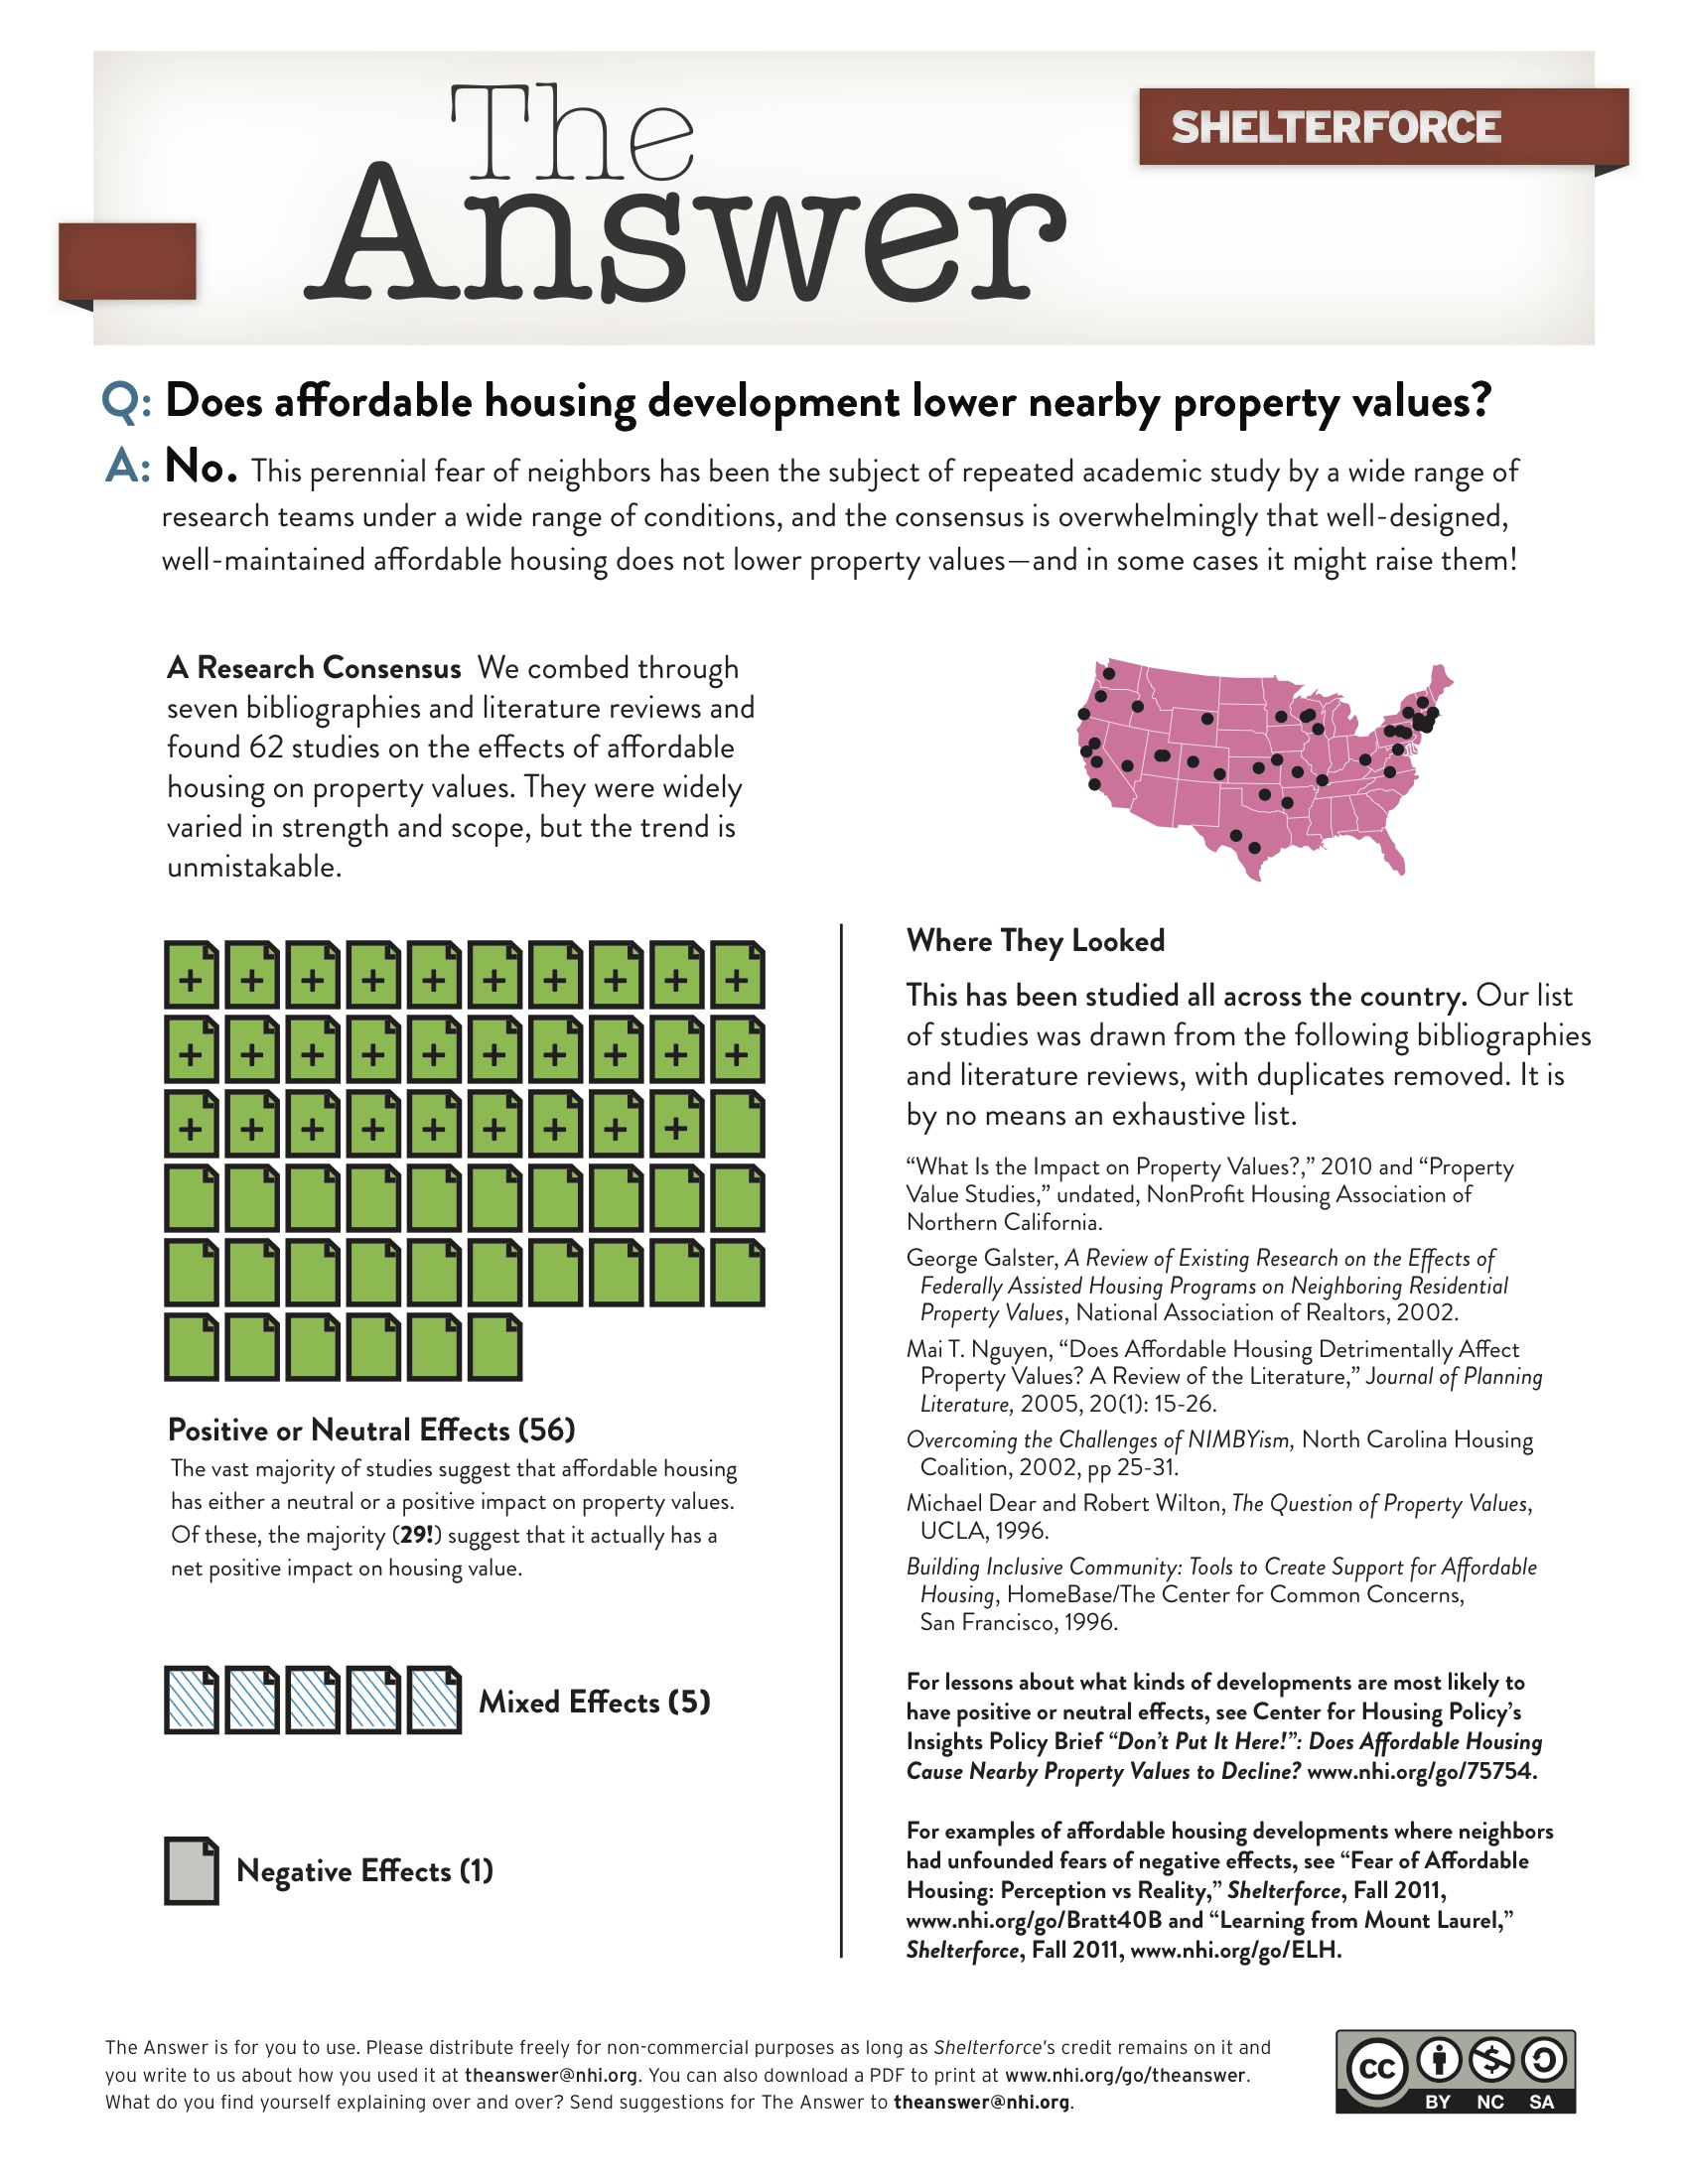 "One-pager starts with ""Does affordable housing lower property values? No!"" Image shows 56 green document icons, 5 striped, and 1 gray to represent research that found positive, mixed, or negative effects and a map of the United States with dots to represent where those studies took place. Includes citations. Image links to pdf version."